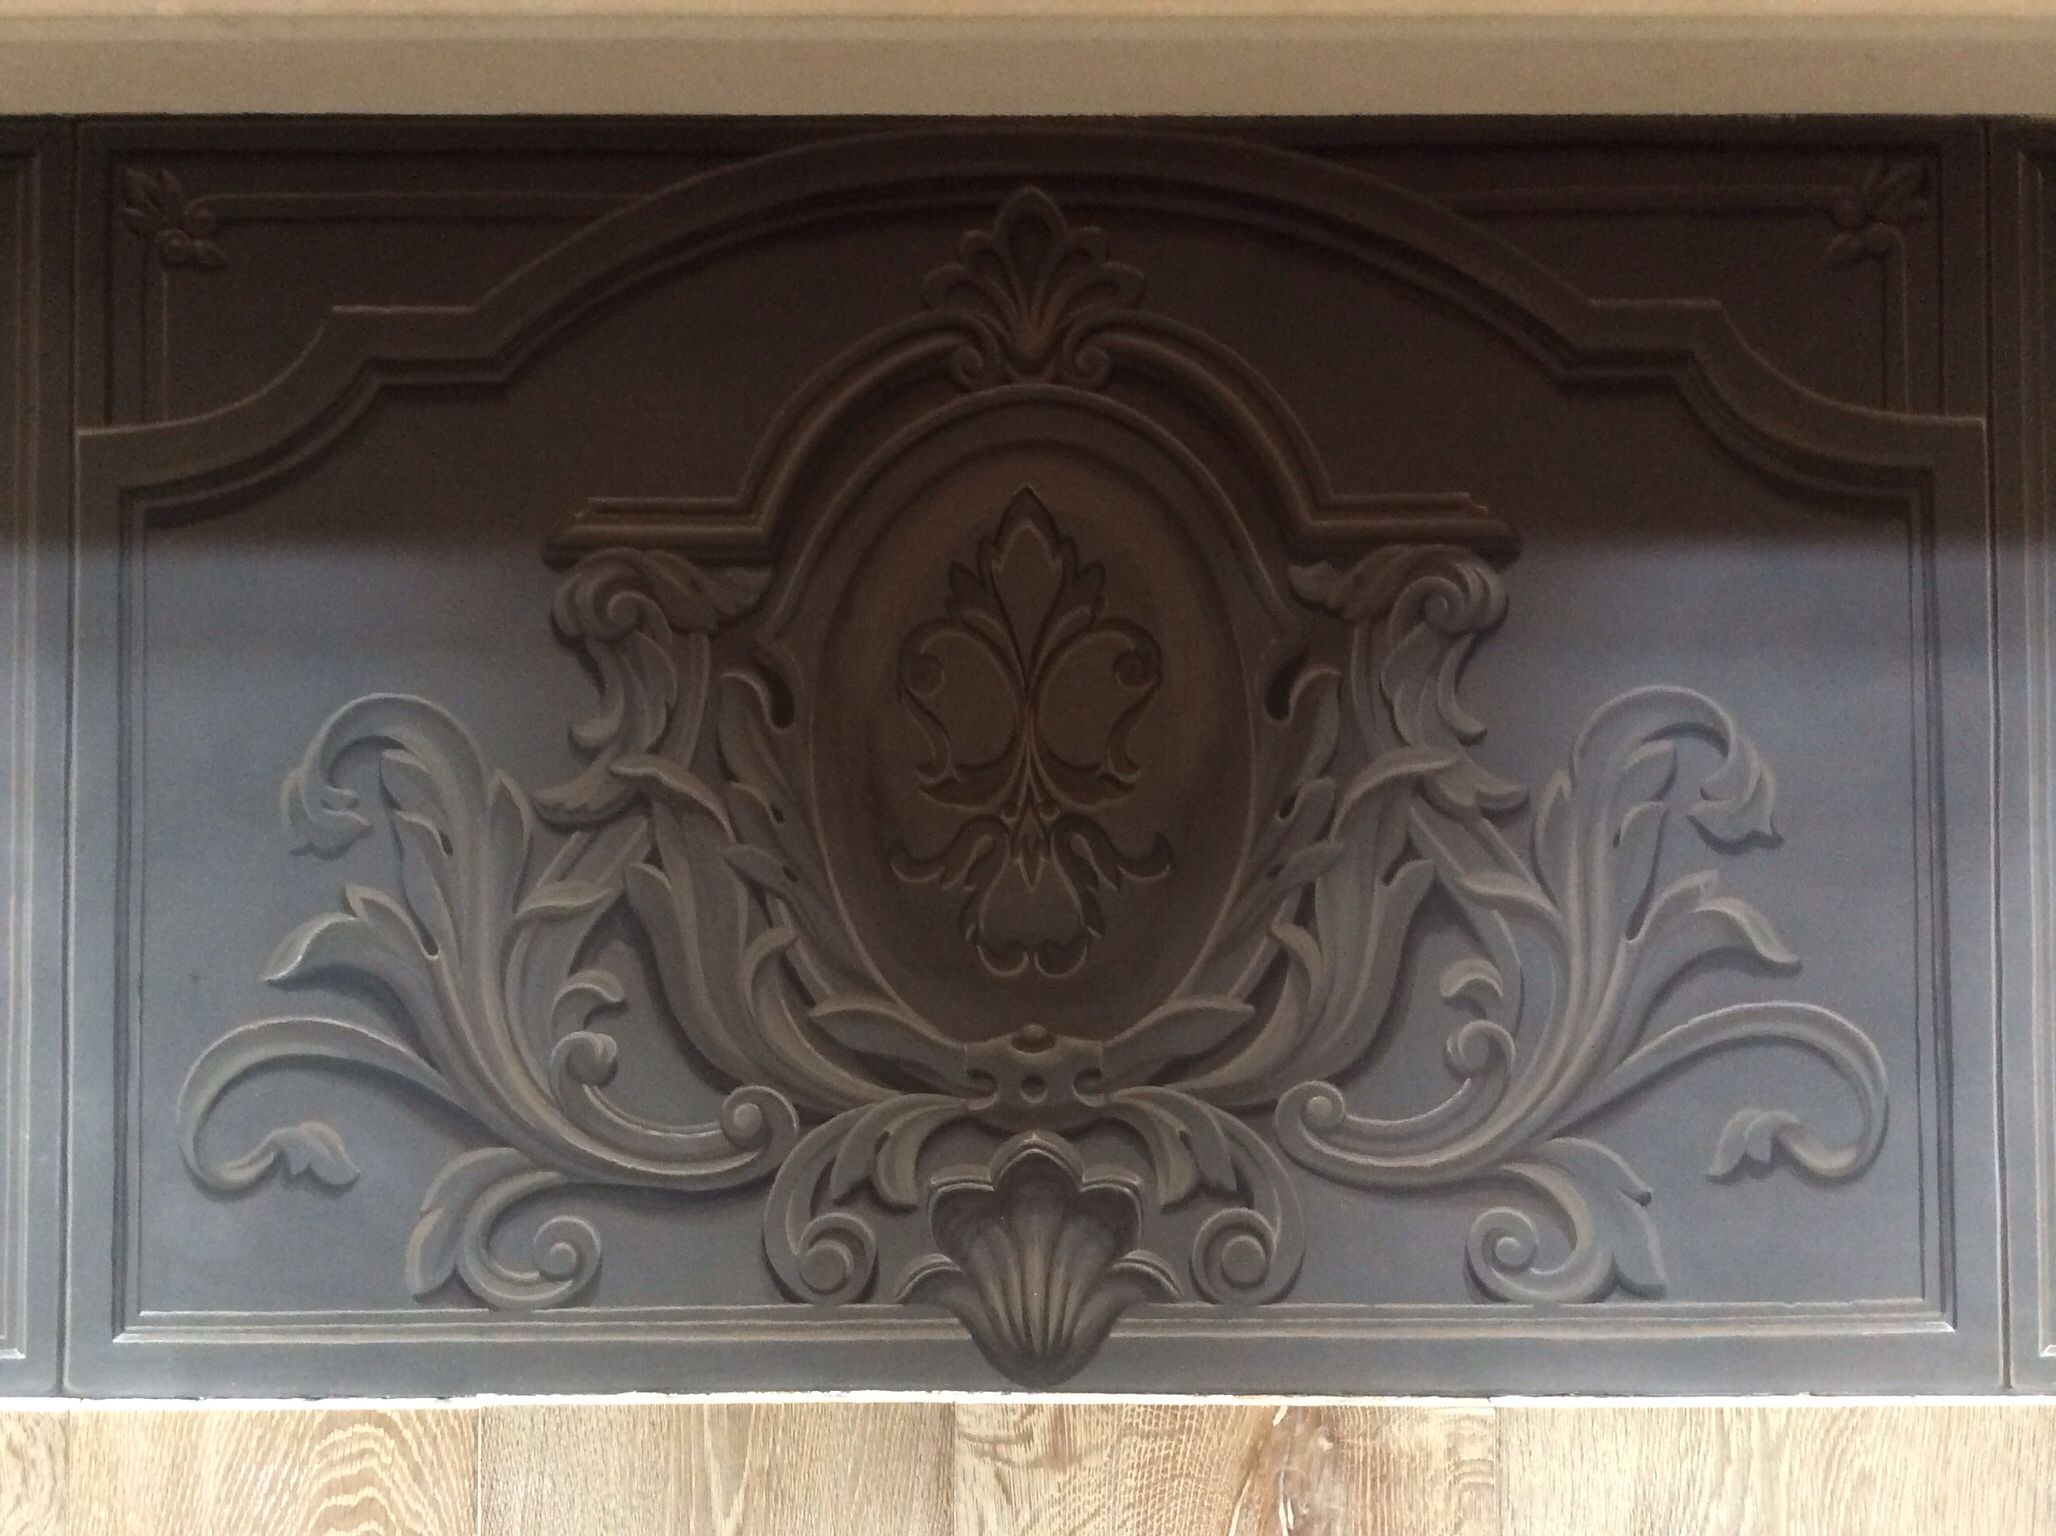 Painting on a floor round the fireplace, imitating cast iron ...